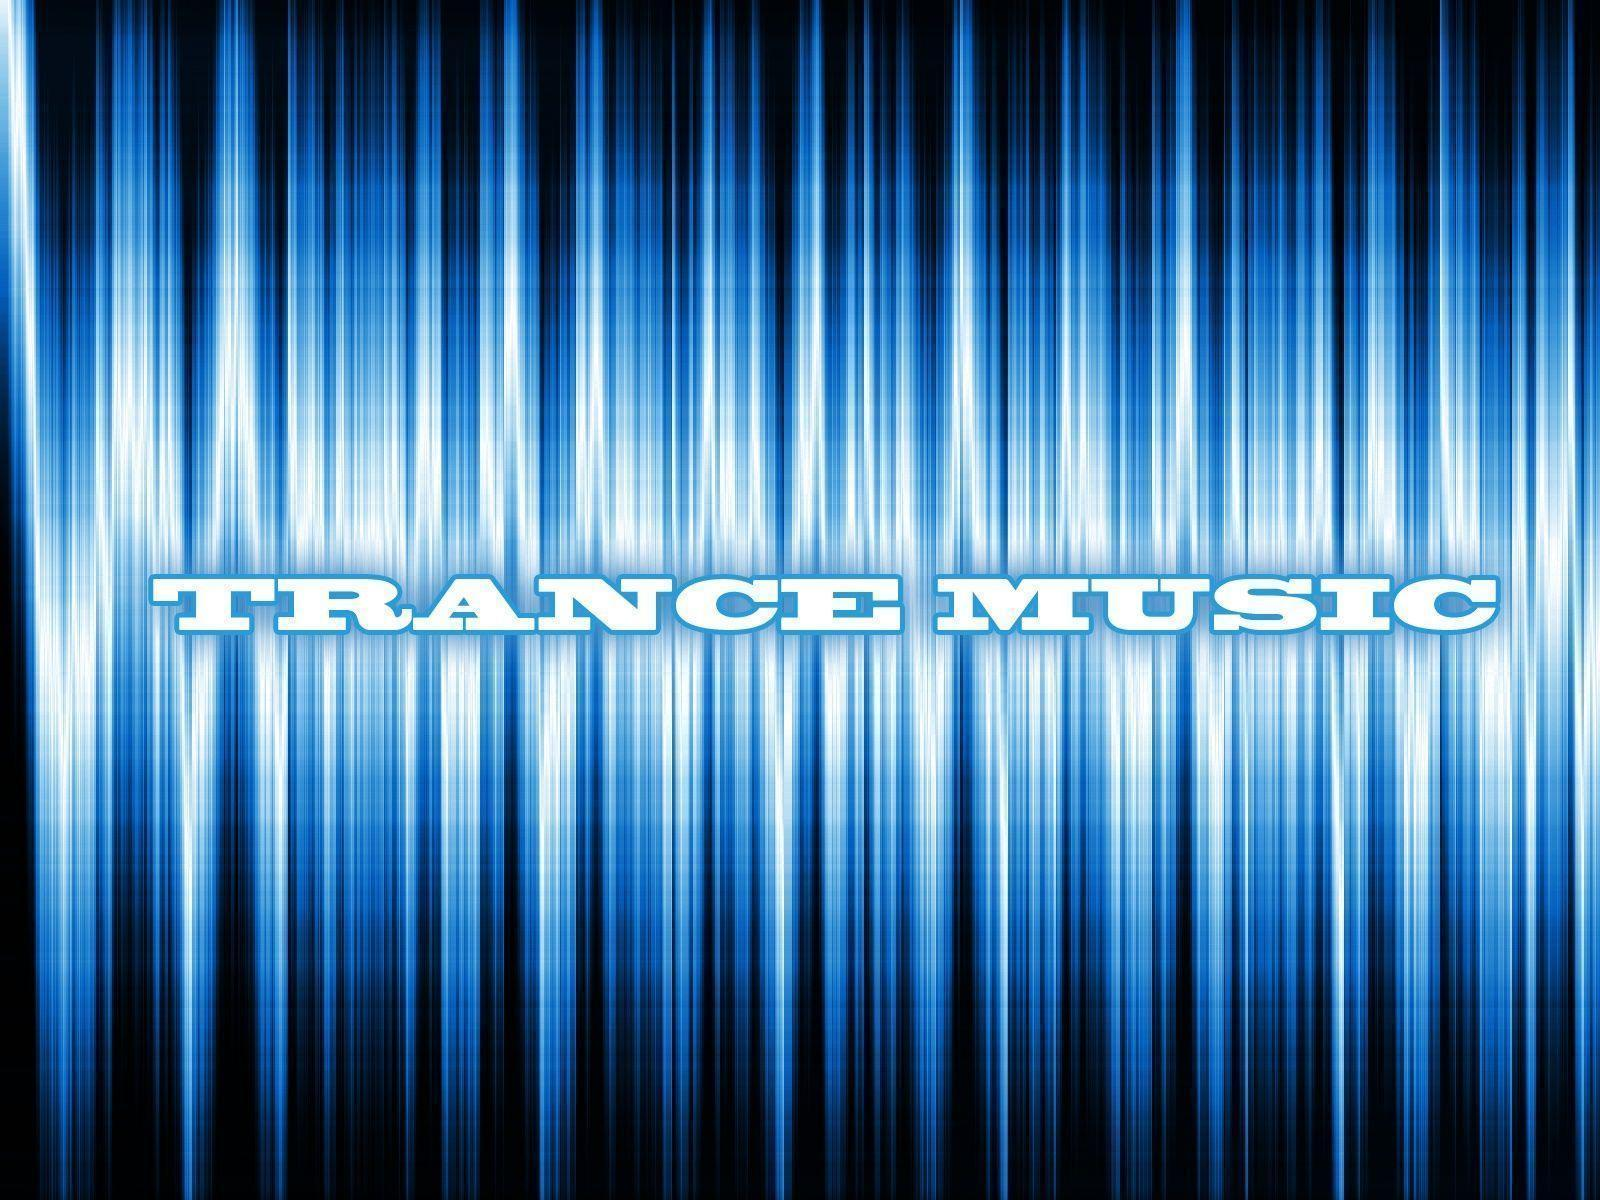 wallpapers trance wallpaper - photo #45